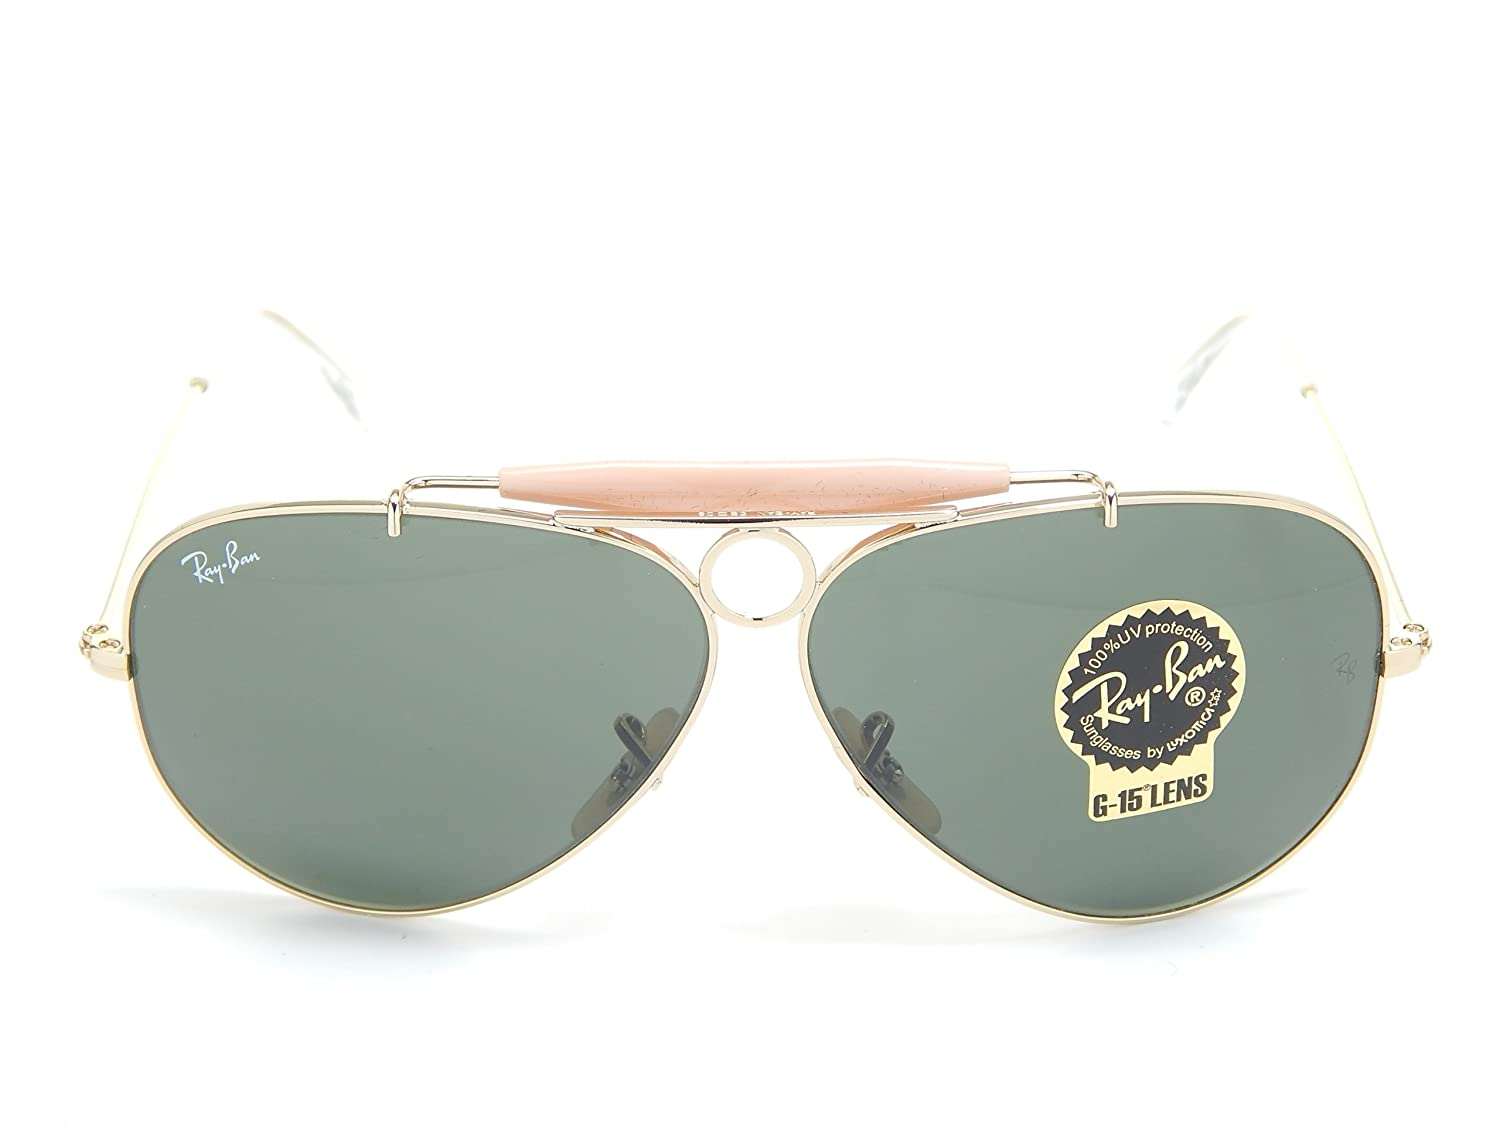 604a4b7dc1 Ray Ban Shooter RB3138 001 Arista G-15 XLT 58mm Sunglasses  Amazon.co.uk   Clothing